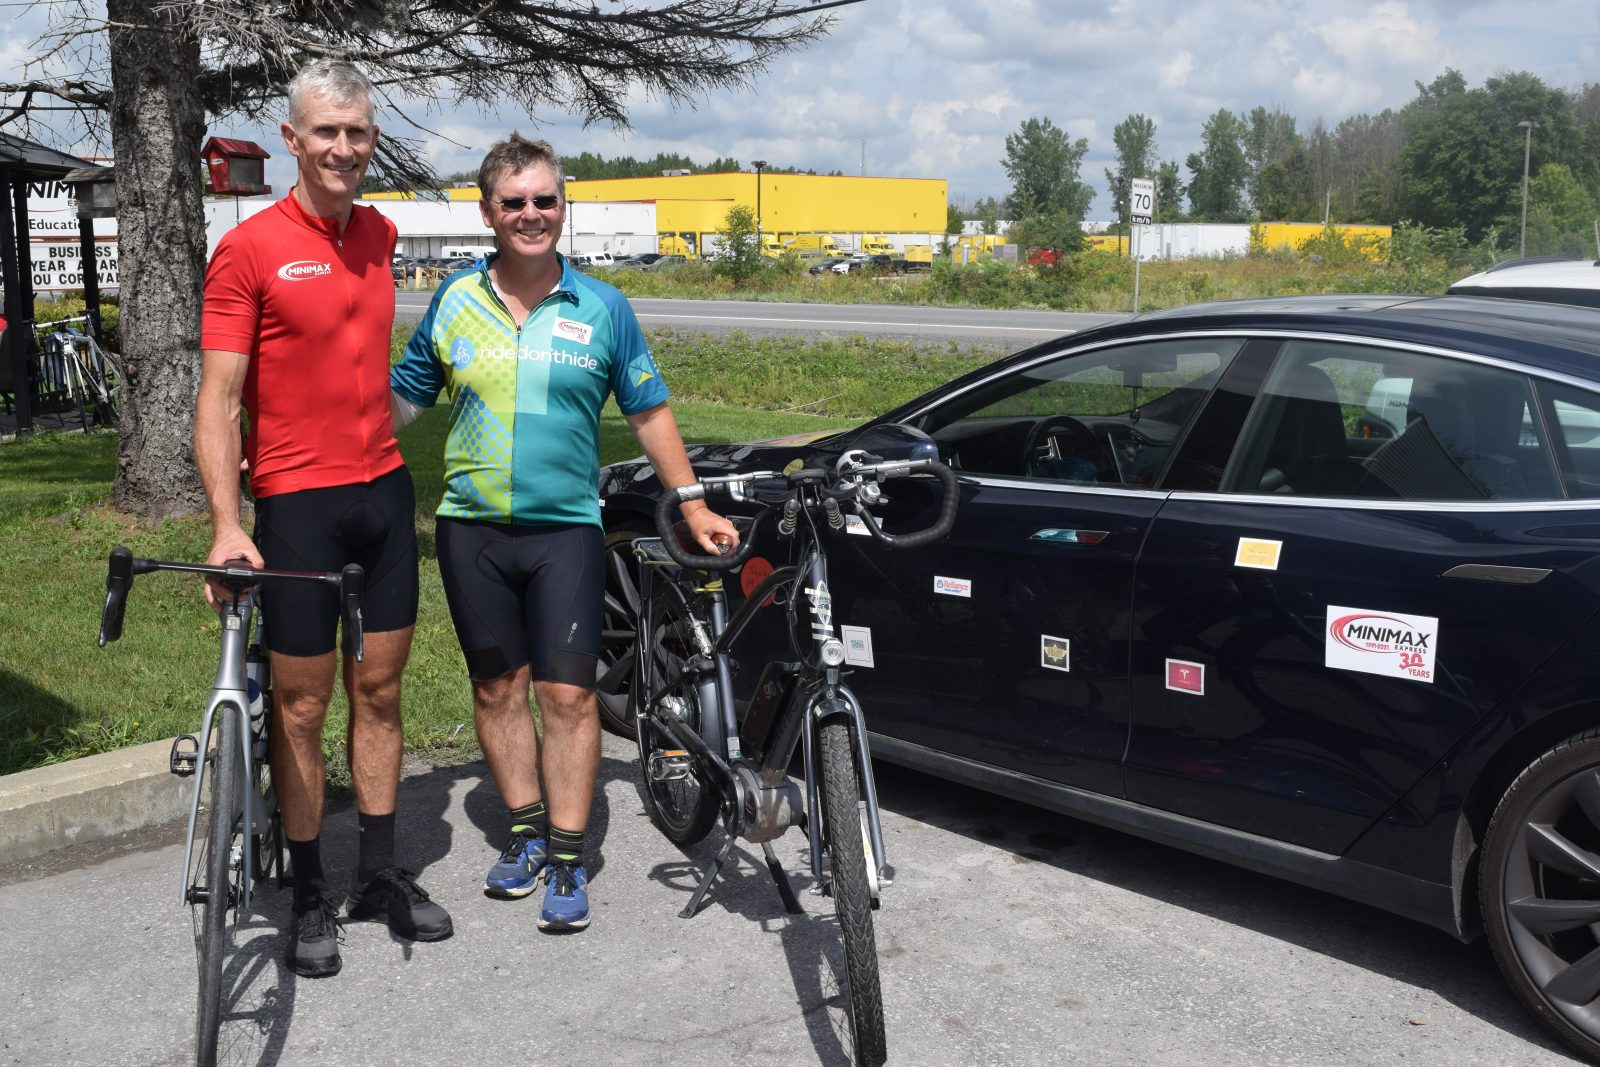 Cycling across Canada for mental health